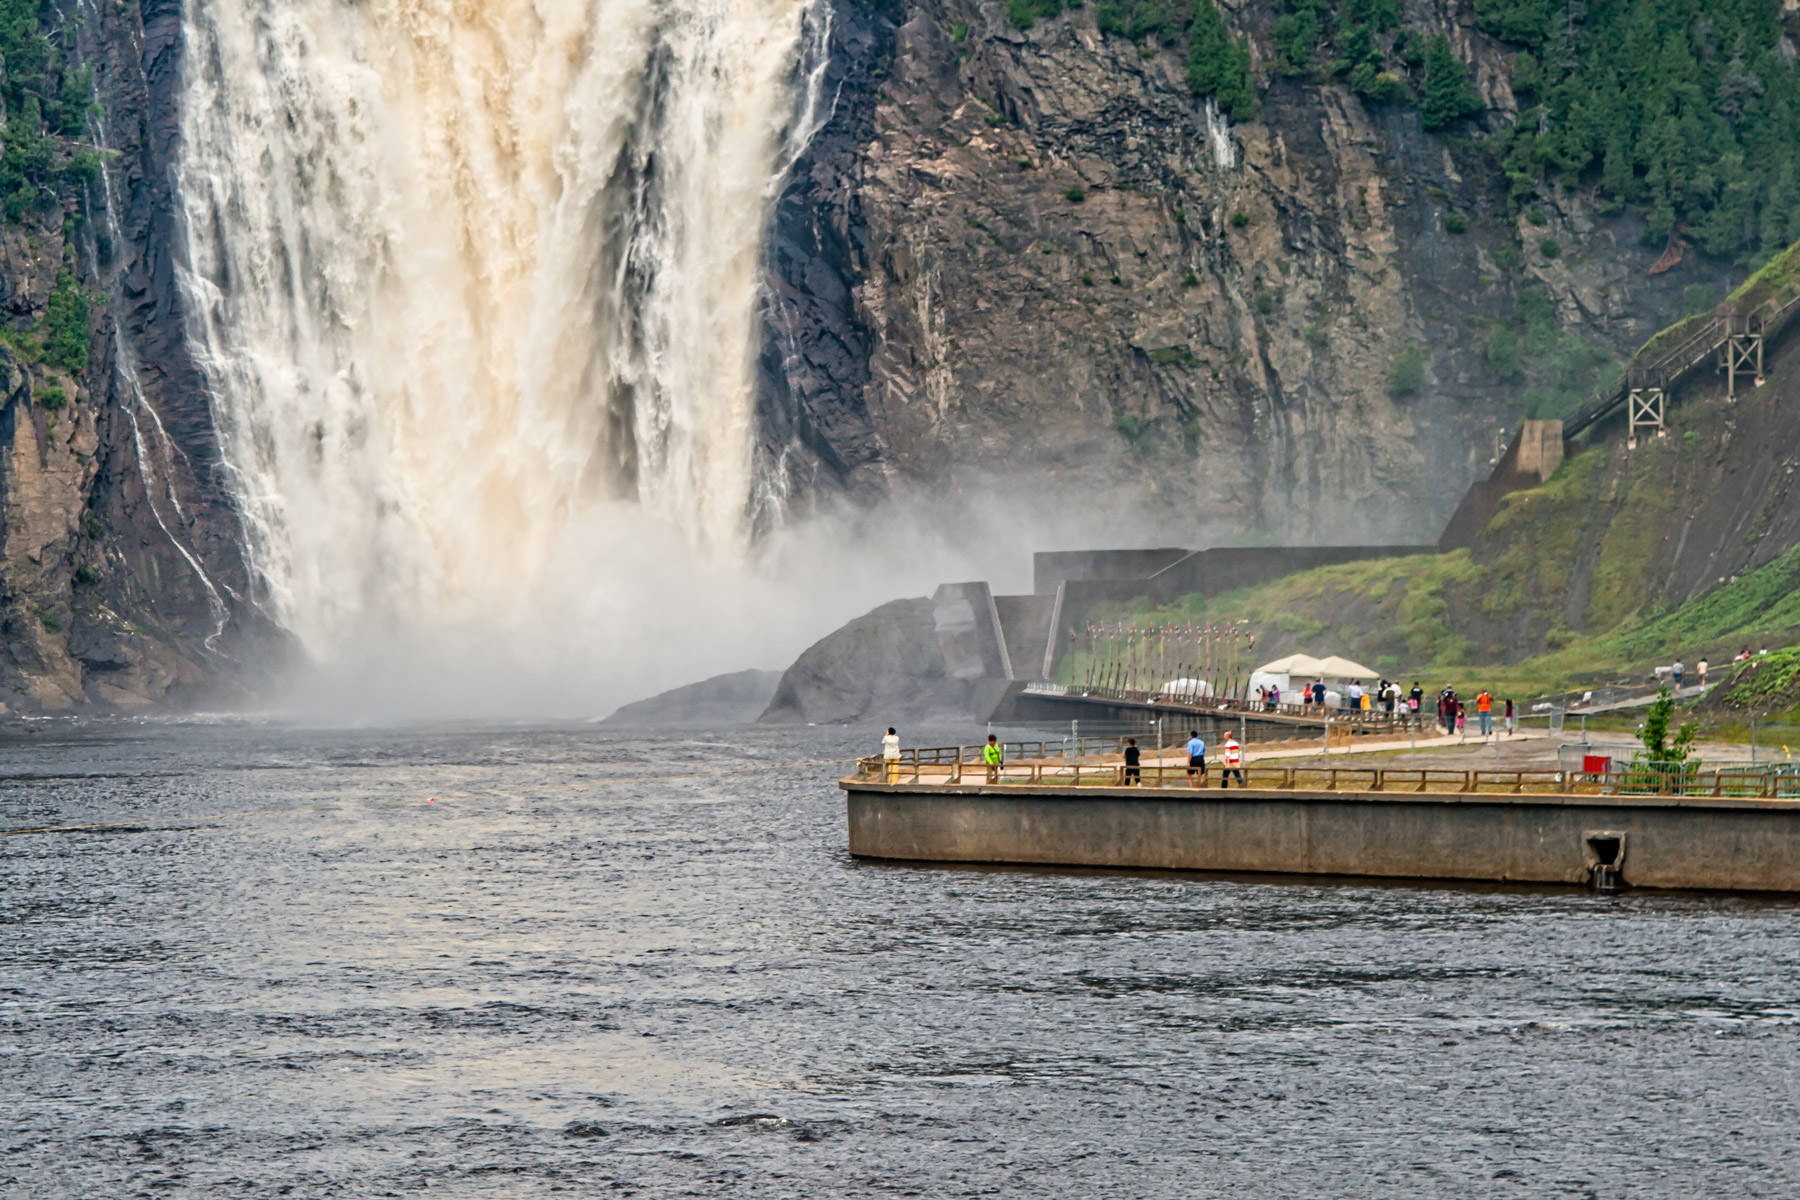 The Montmorency Falls, Québec City, are 84 meters high, 30 meters higher than Niagara Falls.